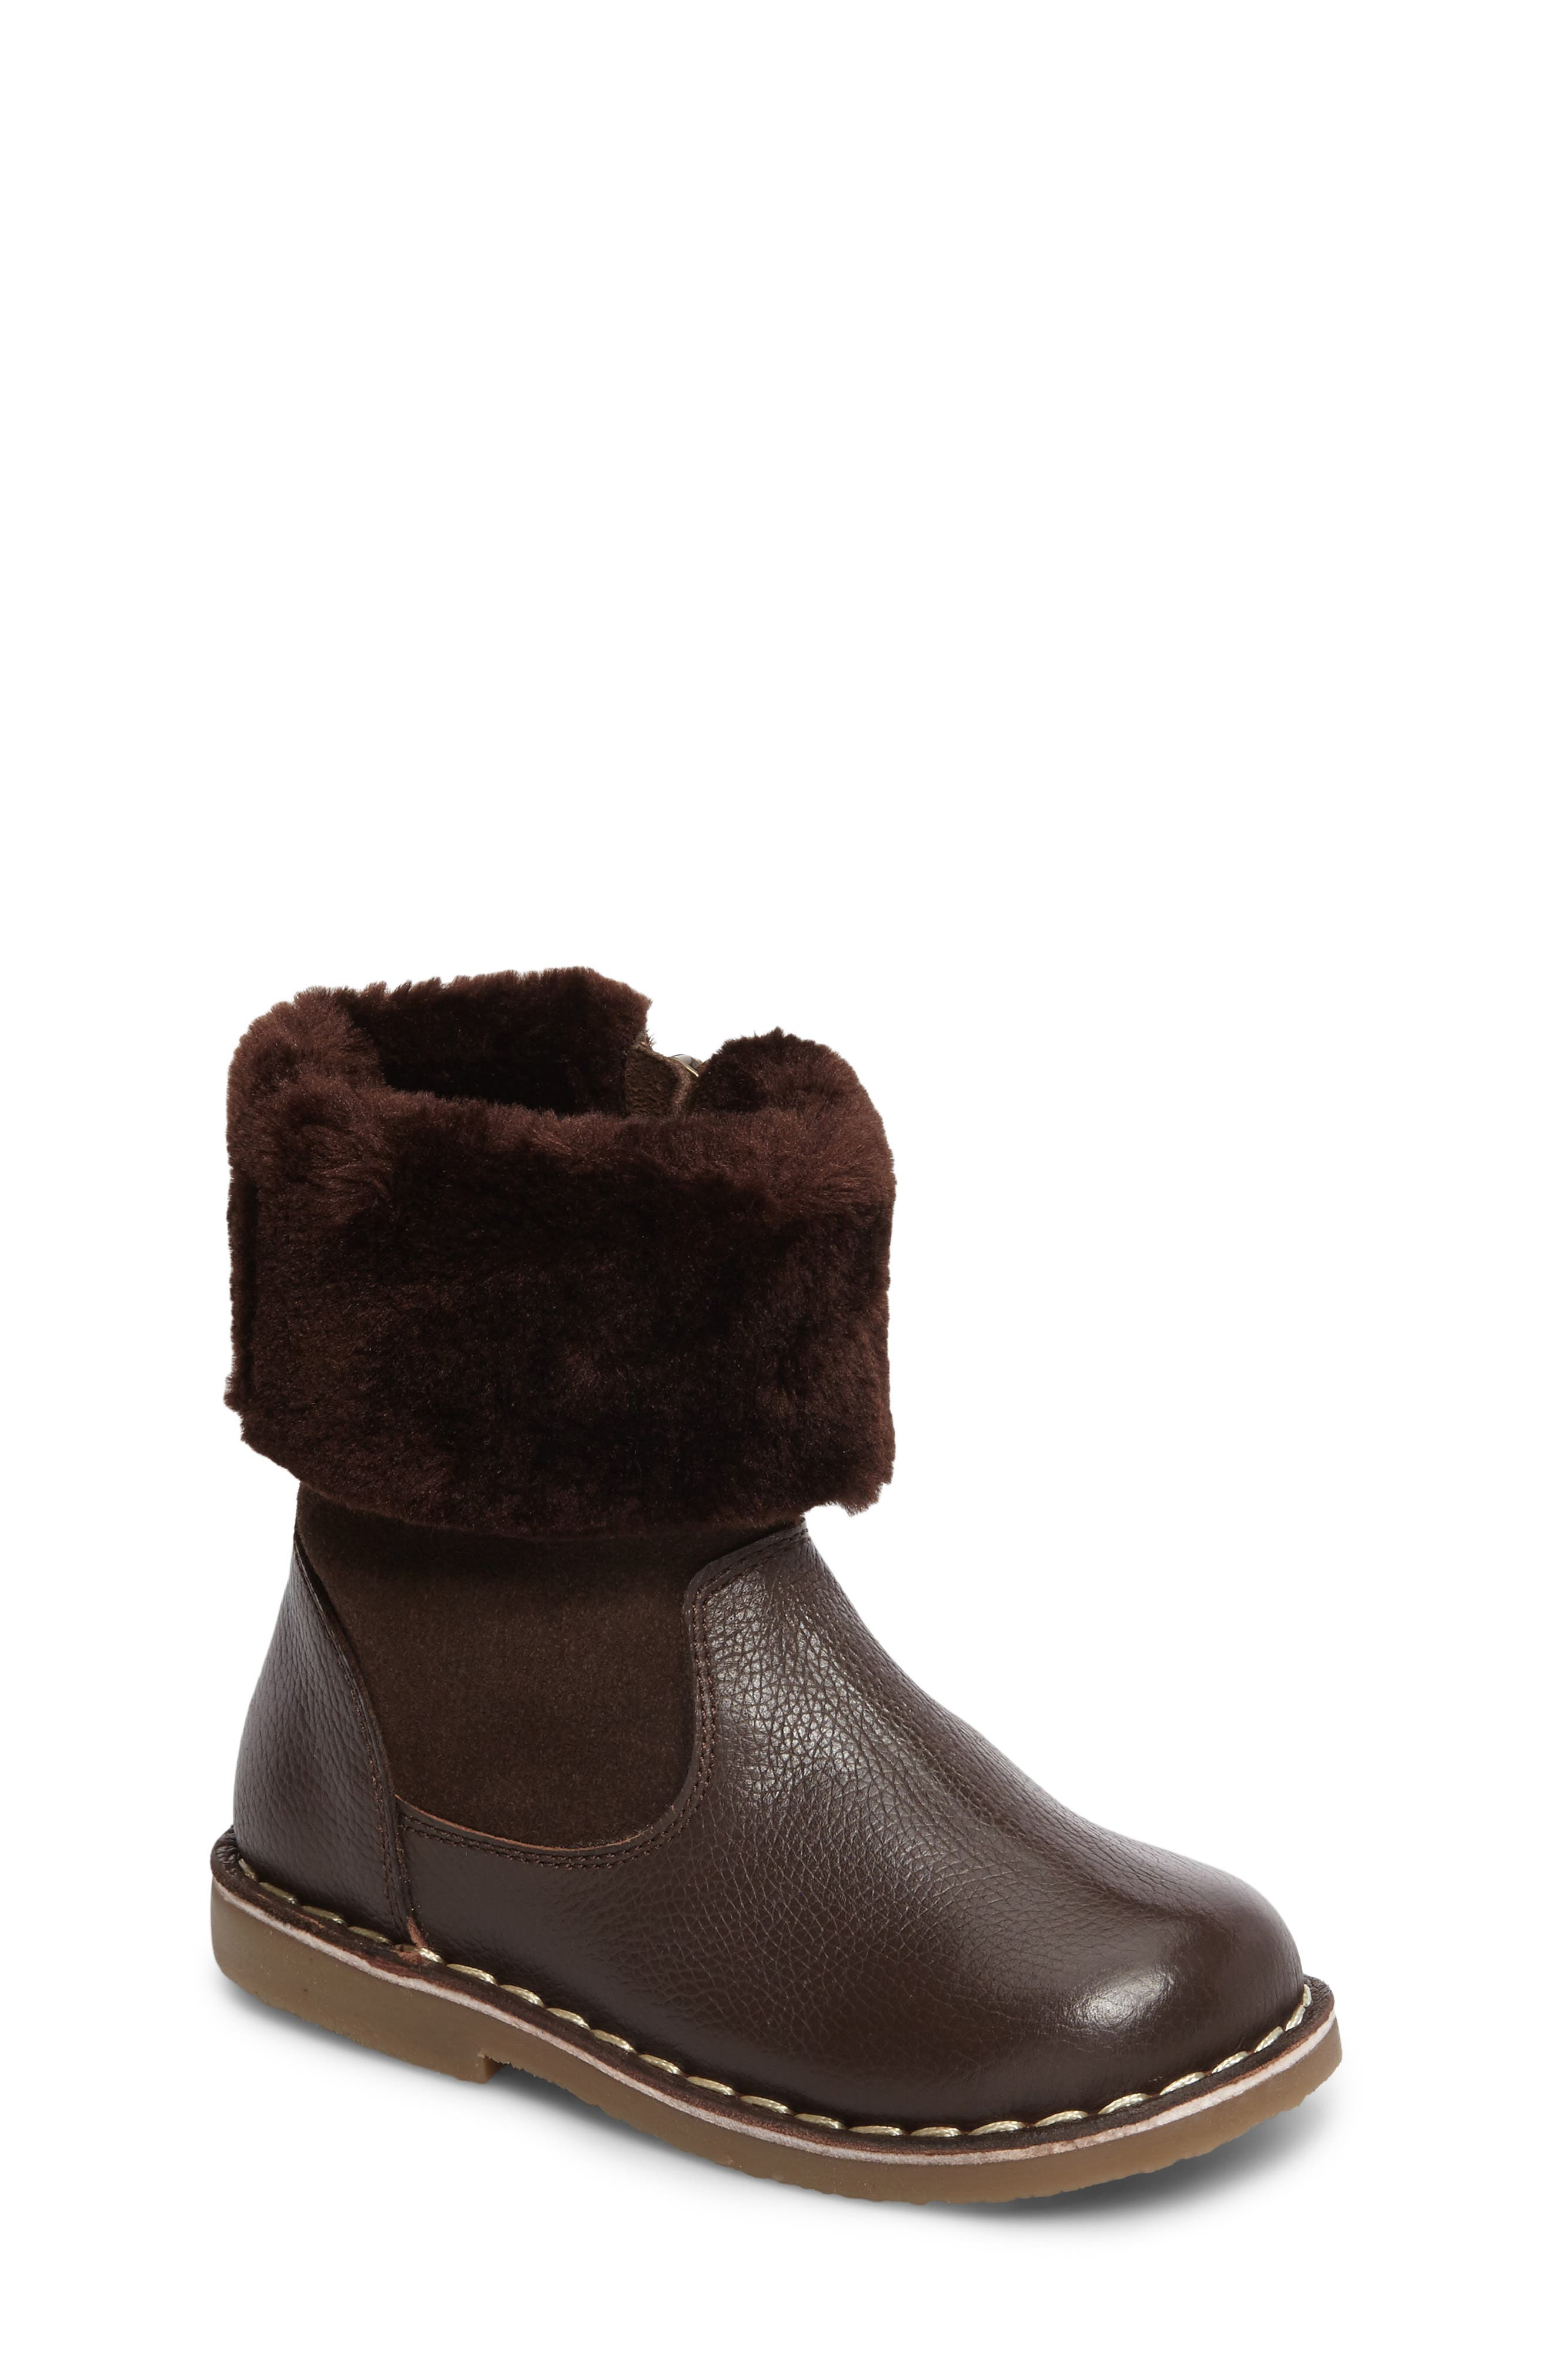 Faux Fur Cuffed Boot,                         Main,                         color, Chocolate Brown